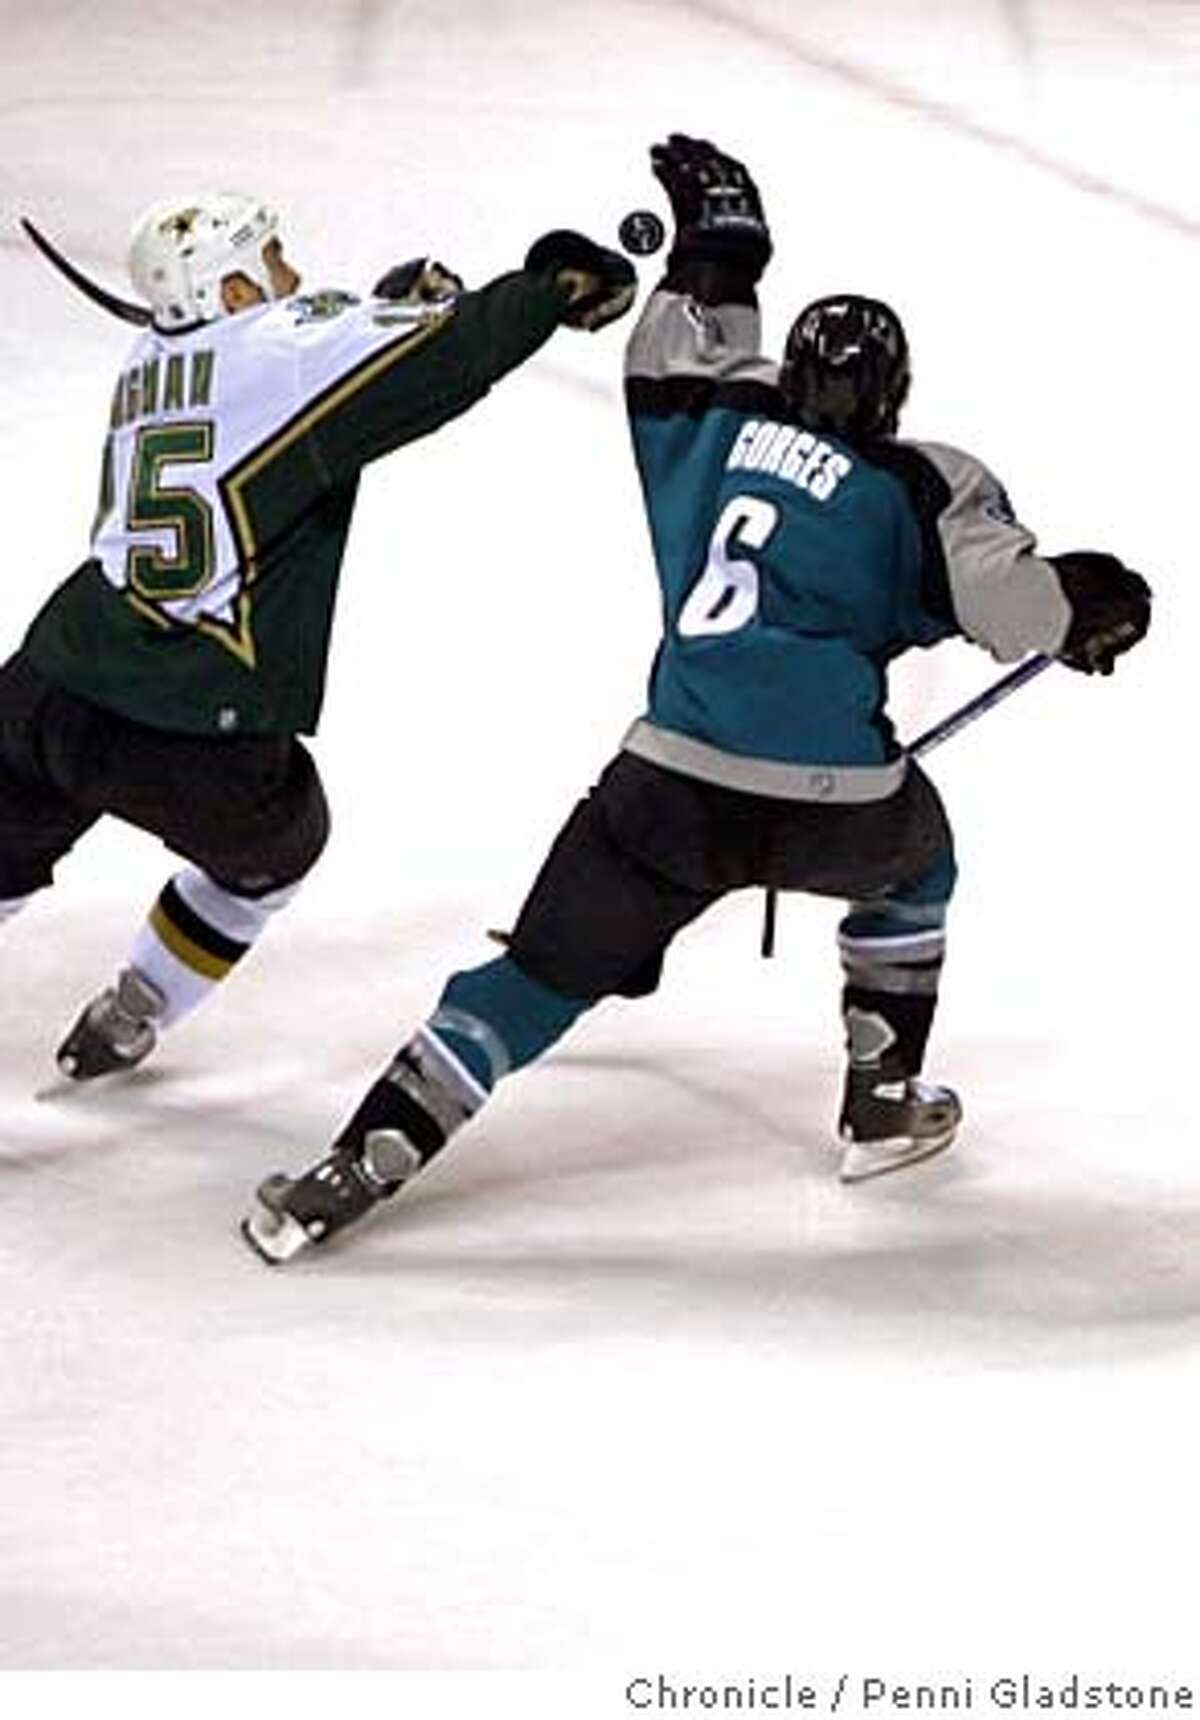 San Jose Sharks vs Dallas Stars In the 2nd period it's hand hockey...as Stars Niklas Hagman reaches for the puck with Sharks Josh Gorges. Event on 1/30/07 in San Jose. Penni Gladstone / The Chronicle